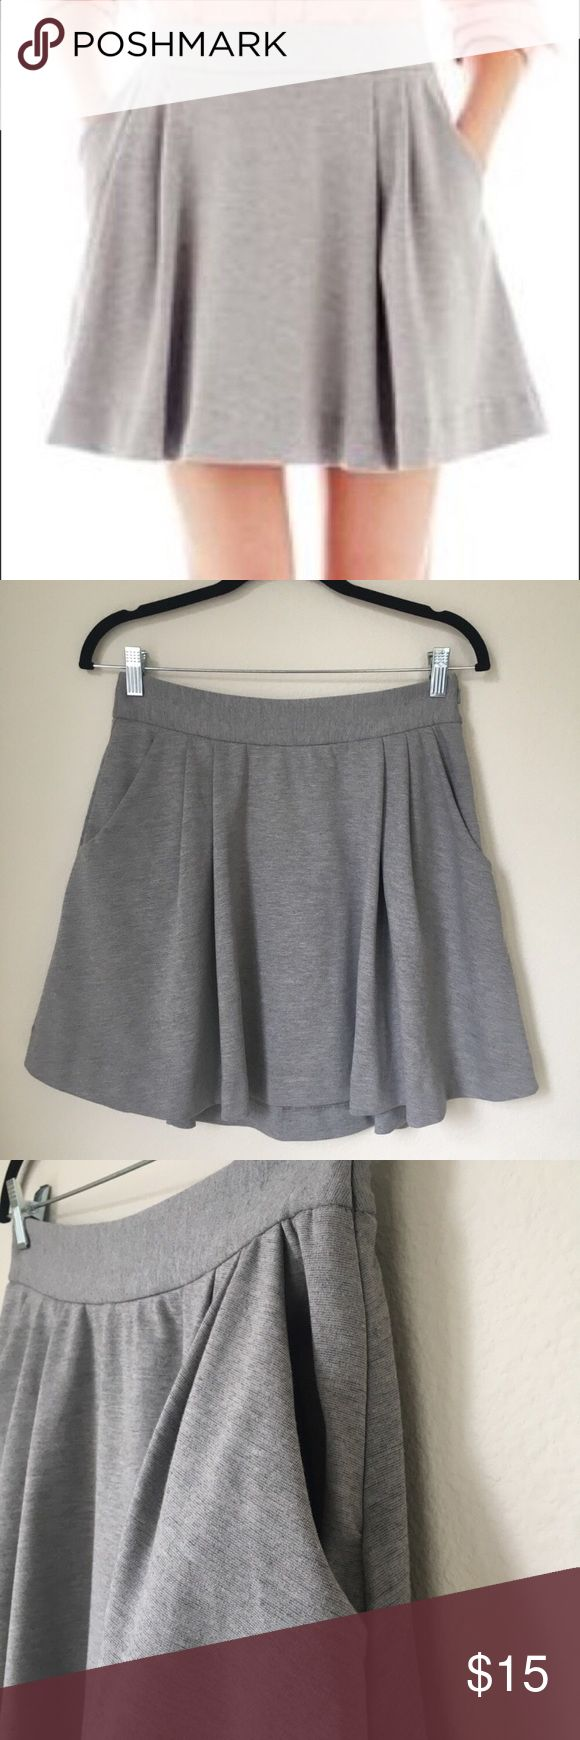 Joe Fresh Size Xsmall Skater Skirt with pockets Joe Fresh Size Xsmall Skater Skirt with pockets Gray Joe Fresh skater skirt with pockets! Great for the office with wedges, pumps or try a sporty / athleisure  look with a pair of Converse or Vans.   Color: gray  Size: xsmall  Material: 74% Polyester 22% Rayon 4% Spandex  Condition: new with out tags; washed but never worn Joe Fresh Skirts Circle & Skater